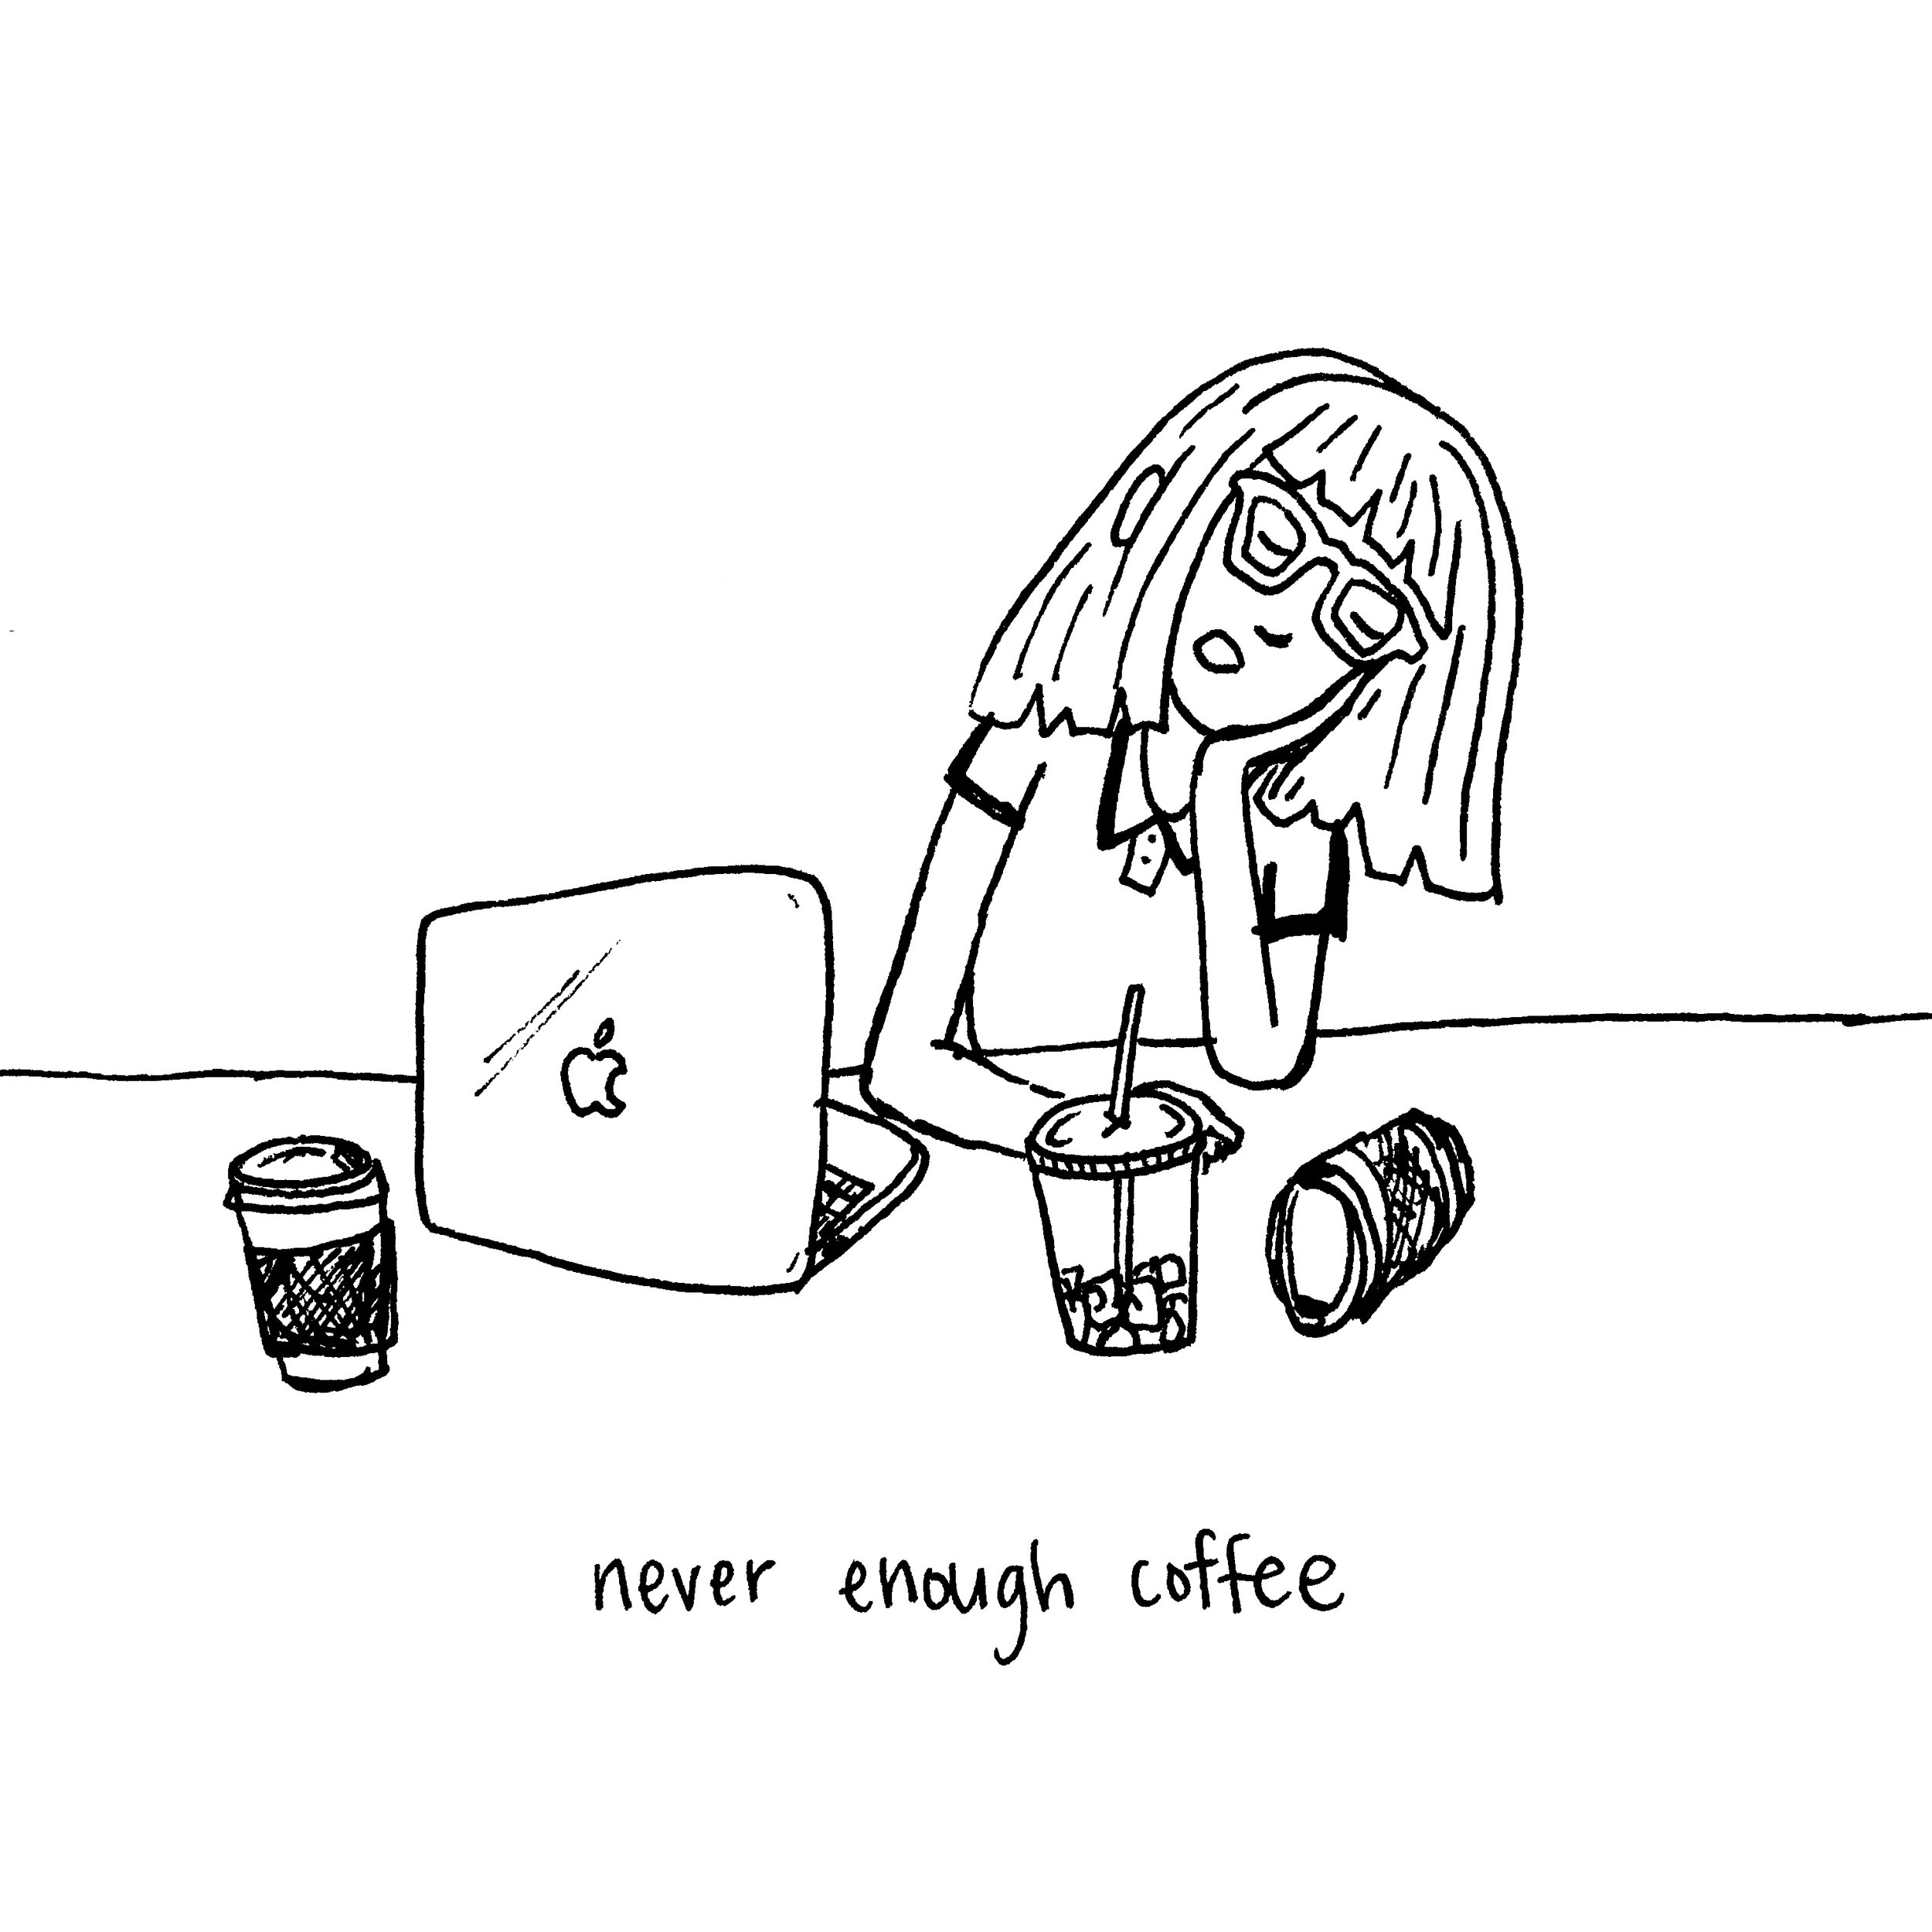 040_lucy-chen_never-enough-coffee.jpg